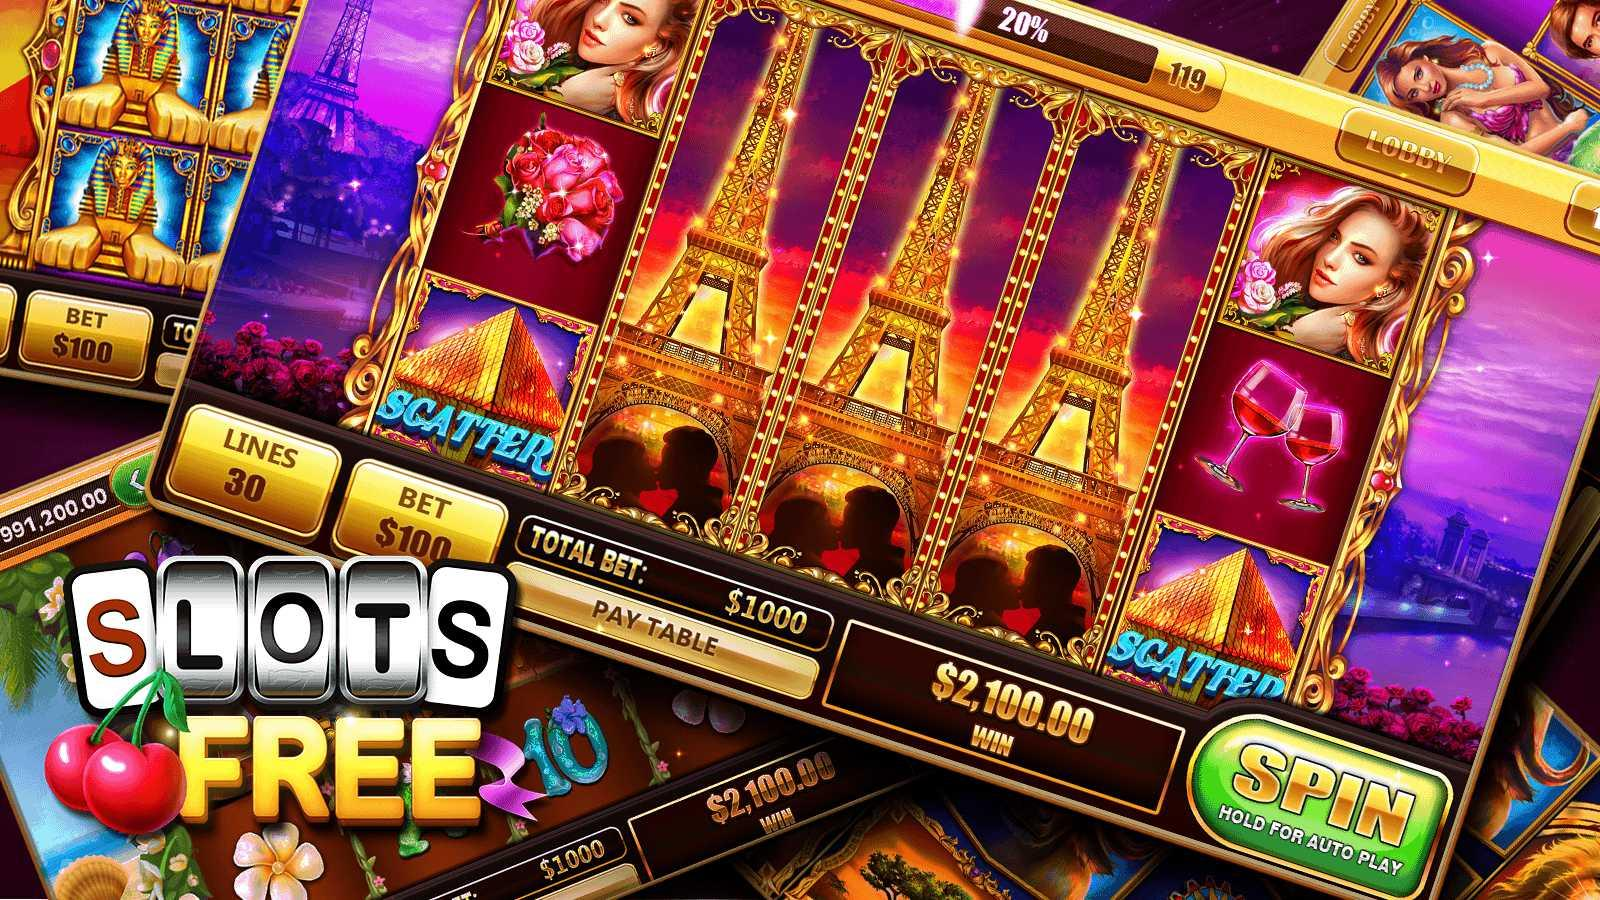 casino slots that are free